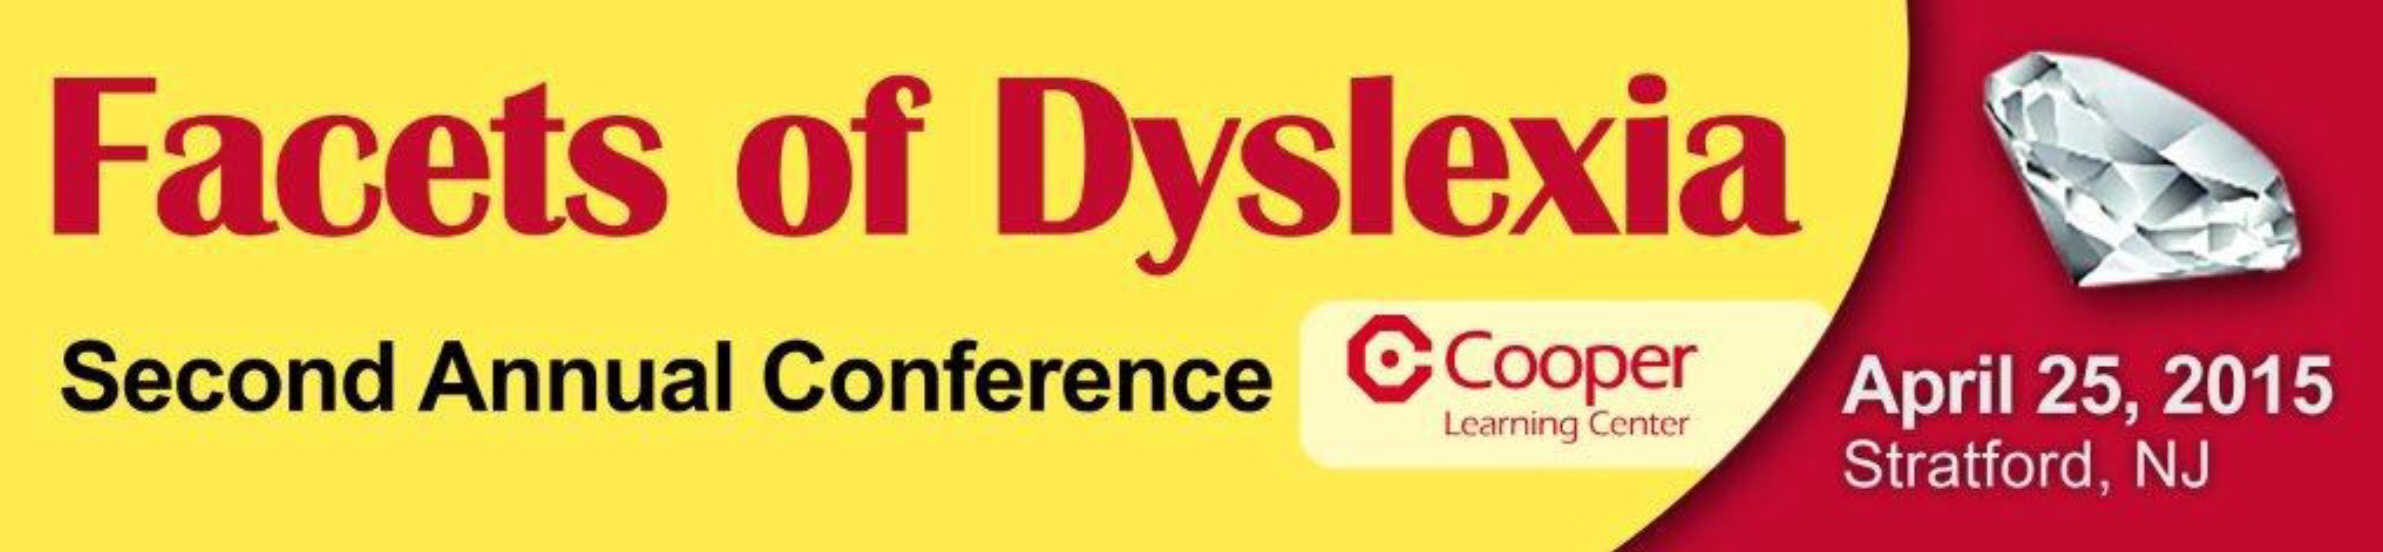 Facets of Dyslexia: Cooper Learning Center's Second Annual Dyslexia  and Language-Based Learning Disabilities Conference.